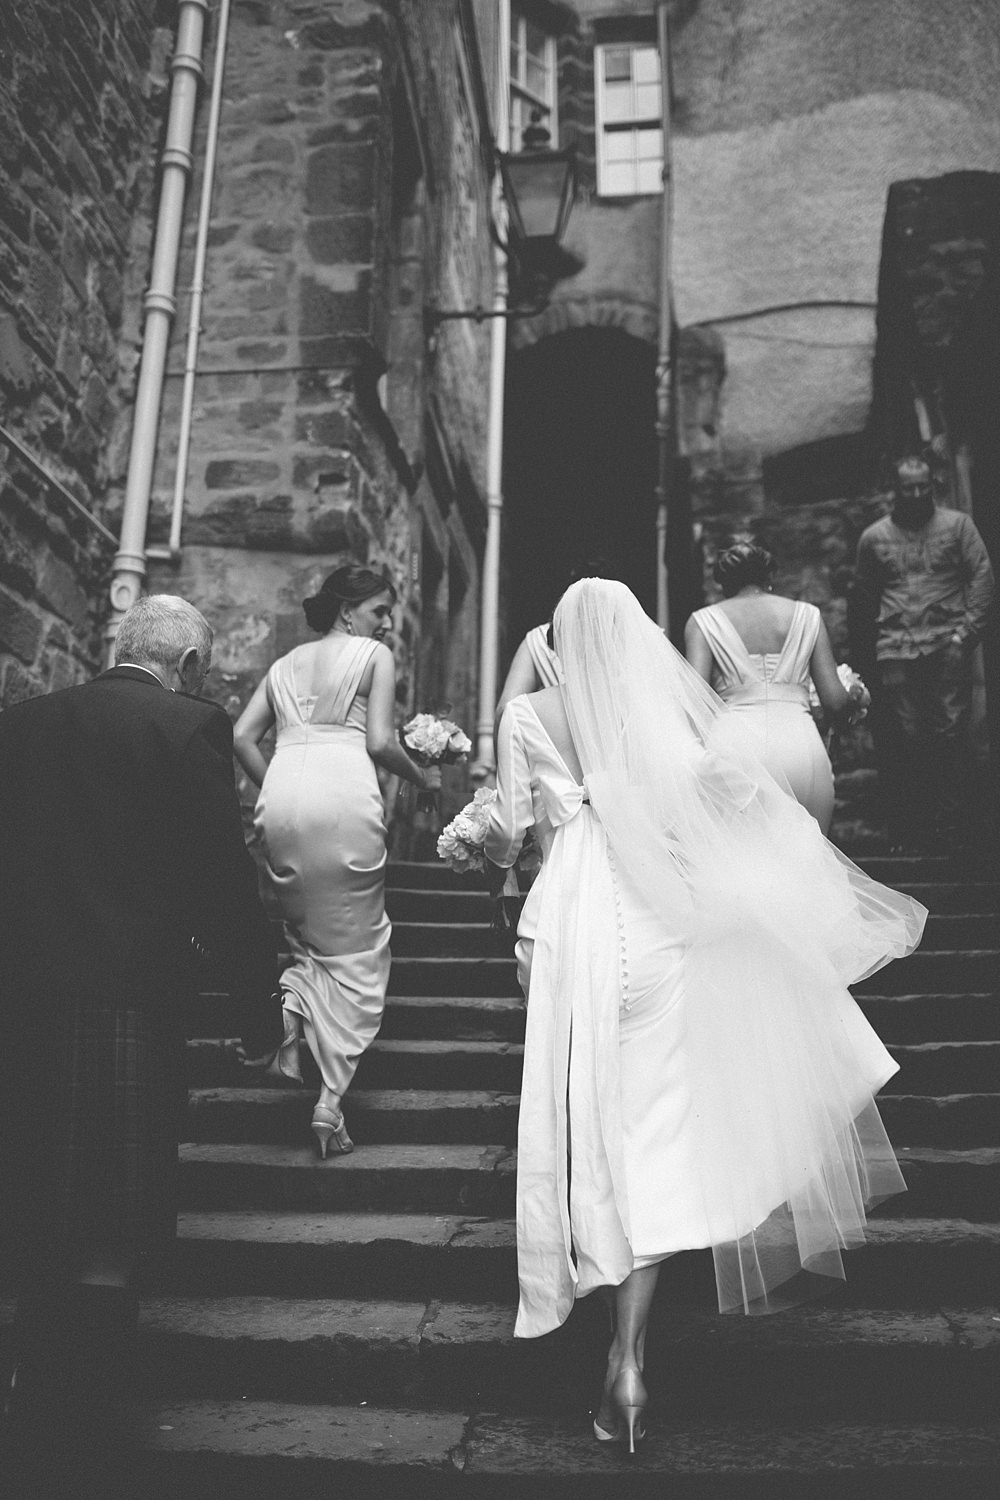 Chantal Lachance-Gibson Photography,Fine Art Wedding Photographers,The Gibsons,creative wedding photographers glasgow,edinburgh city wedding,husband and wife wedding photographers scotland,romantic wedding photographers,two wedding photographers scotland,